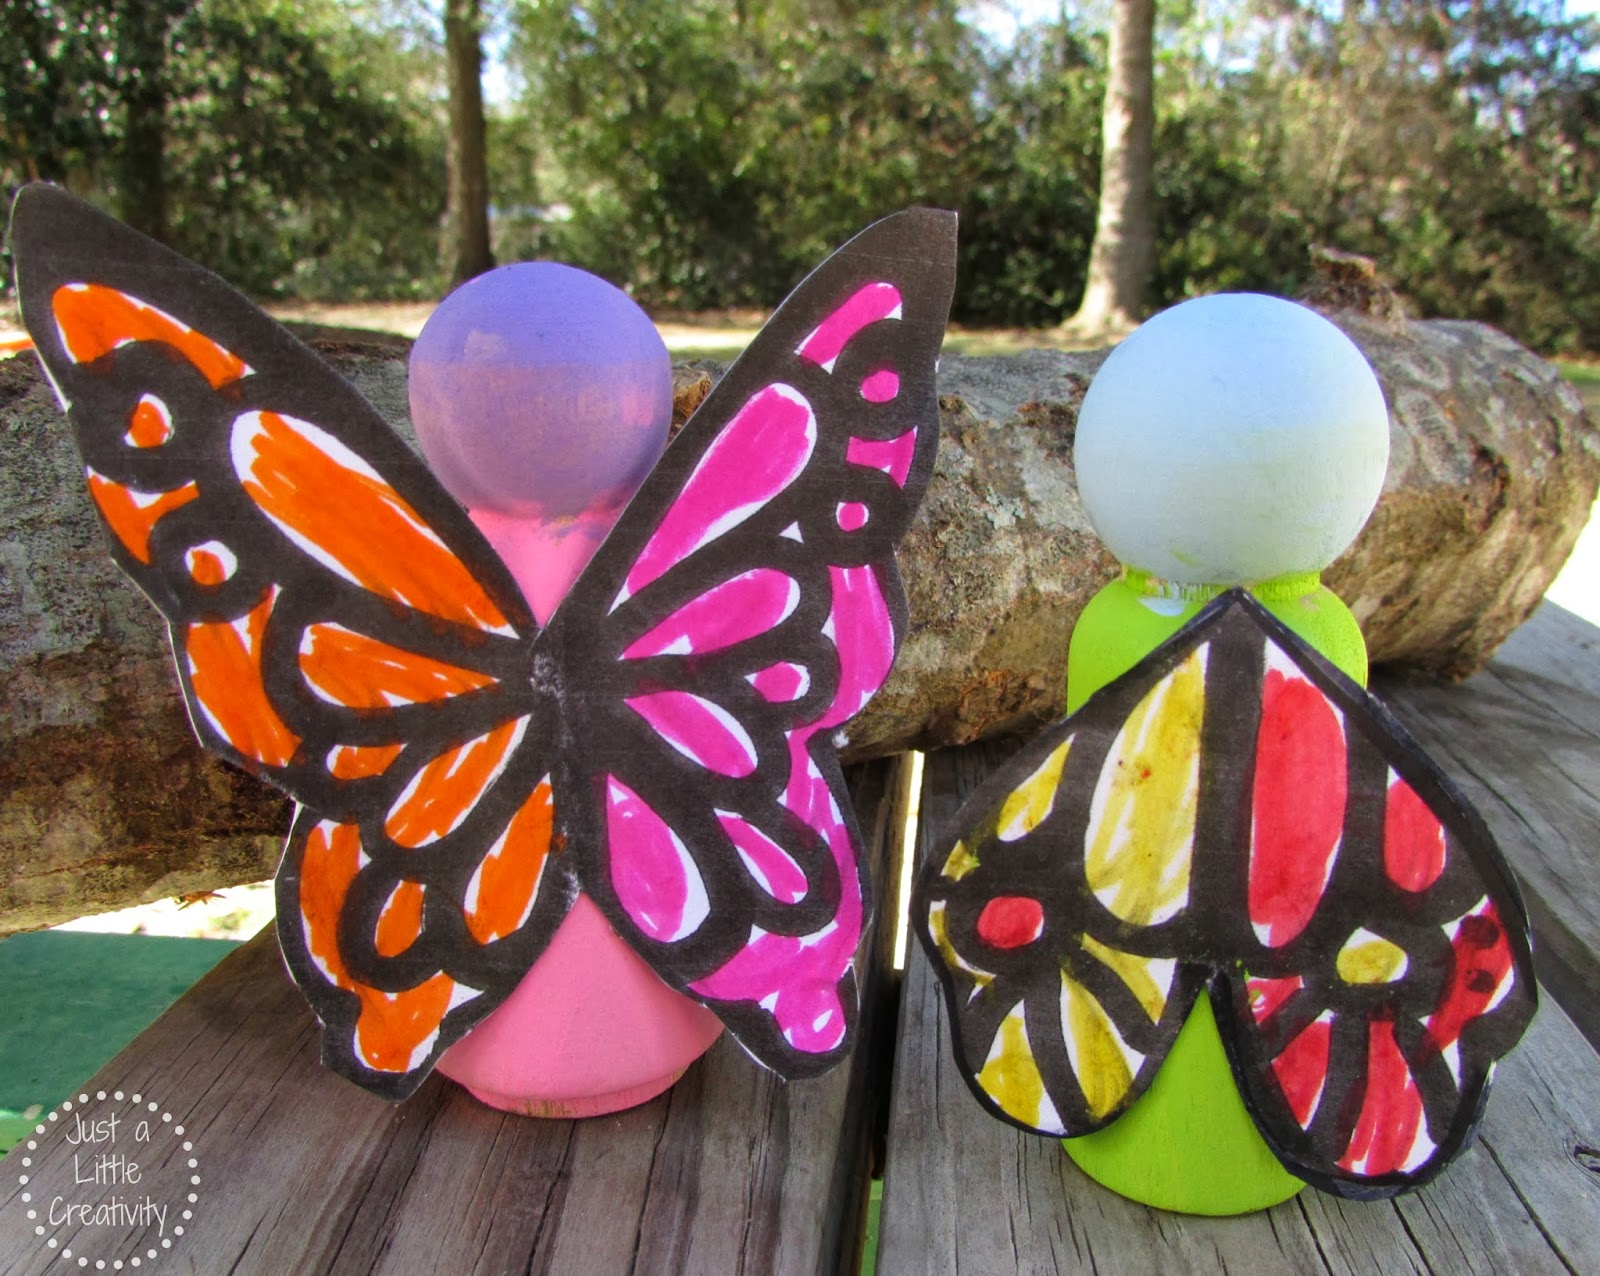 I Hope You And Your Little One Enjoy Many Hours Of Creative Play With Their  Very Own Unique Butterfly Garden ...